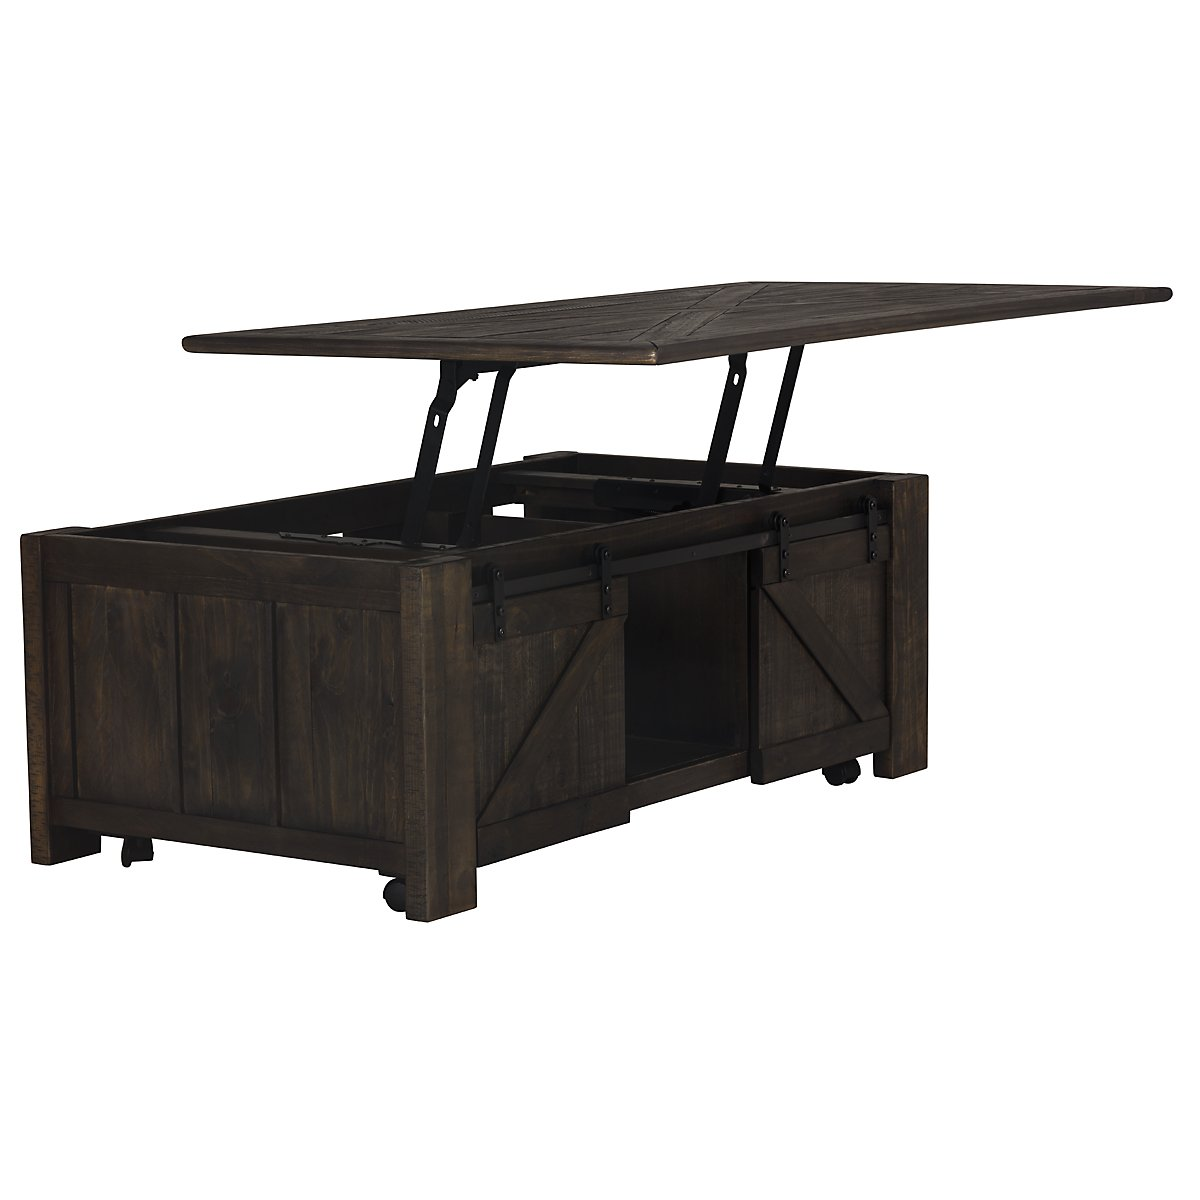 City furniture garrett dark tone castored lift coffee table garrett dark tone castored lift coffee table garrett dark tone castored lift coffee table geotapseo Image collections